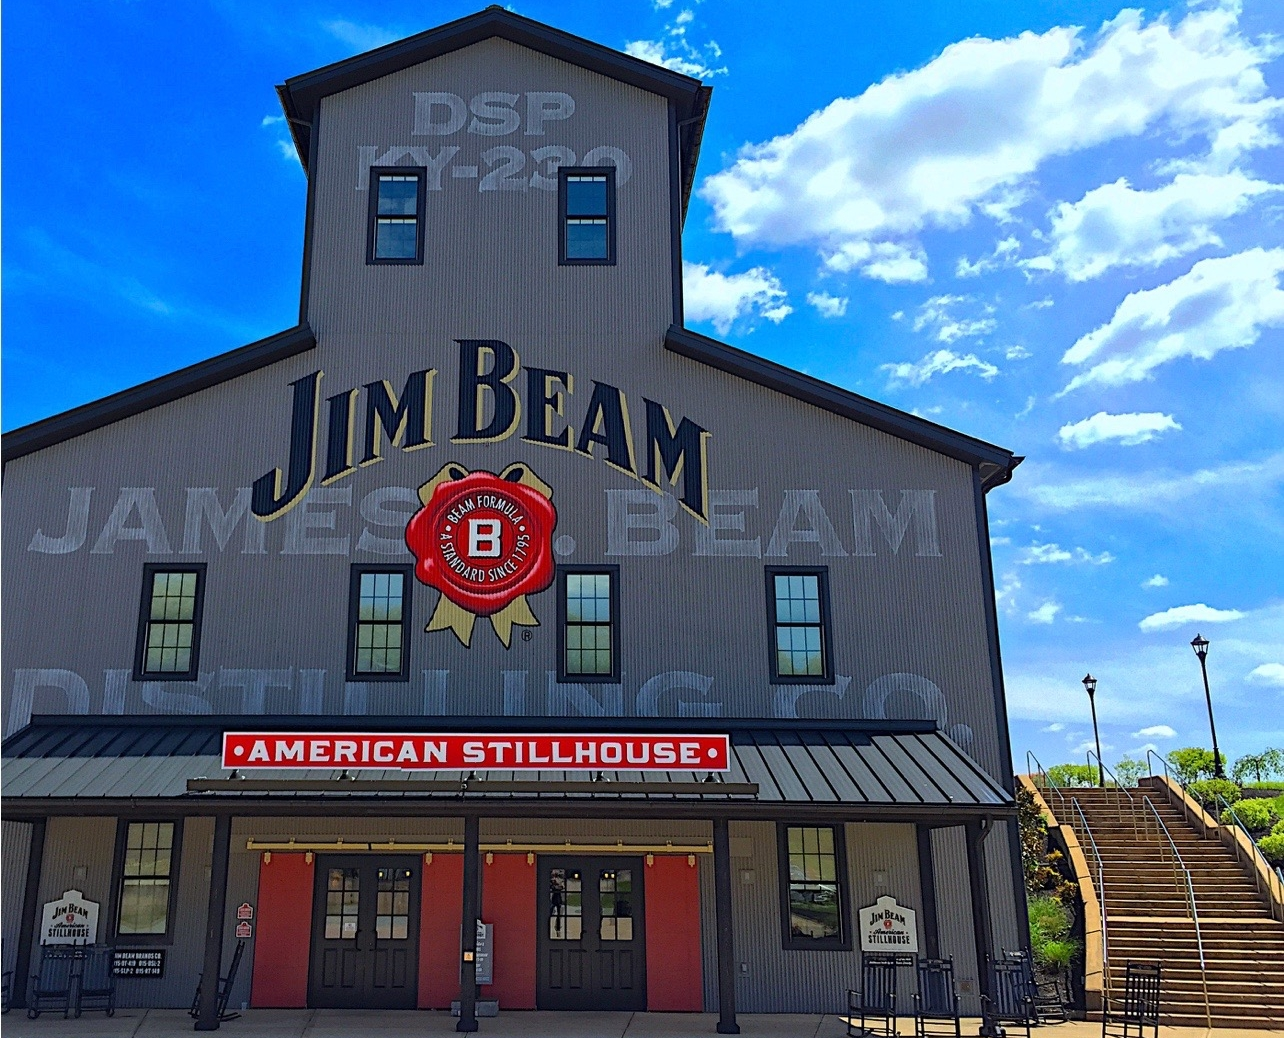 Jim Beam's American Stillhouse   opened for Tours in 2014 in Clermont, Kentucky and instantly became one of Central Kentucky's leading attractions.